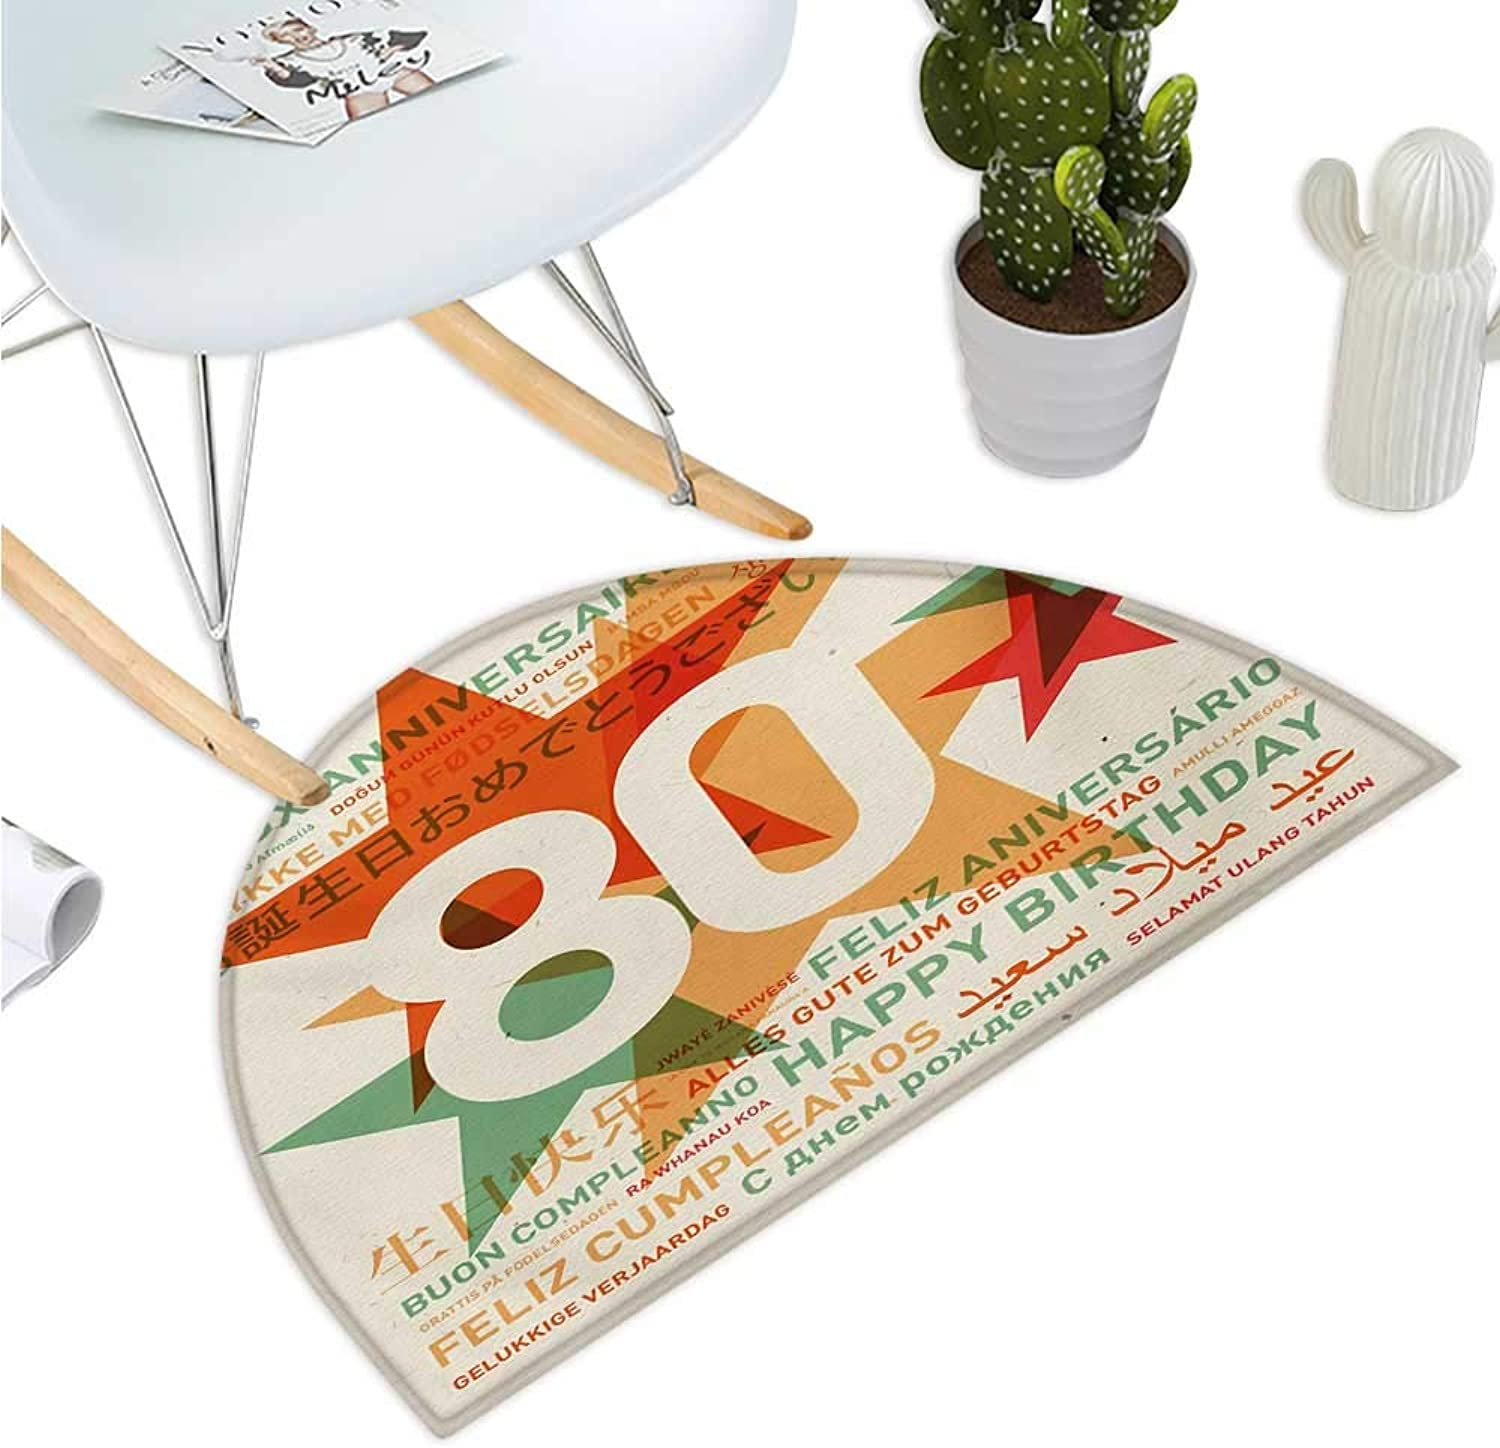 80th Birthday Semicircle Doormat 80 Years Old Party with Universal Happy Birthday Best Wish Entry Door Mat H 35.4  xD 53.1  Green and Pale Vermilion